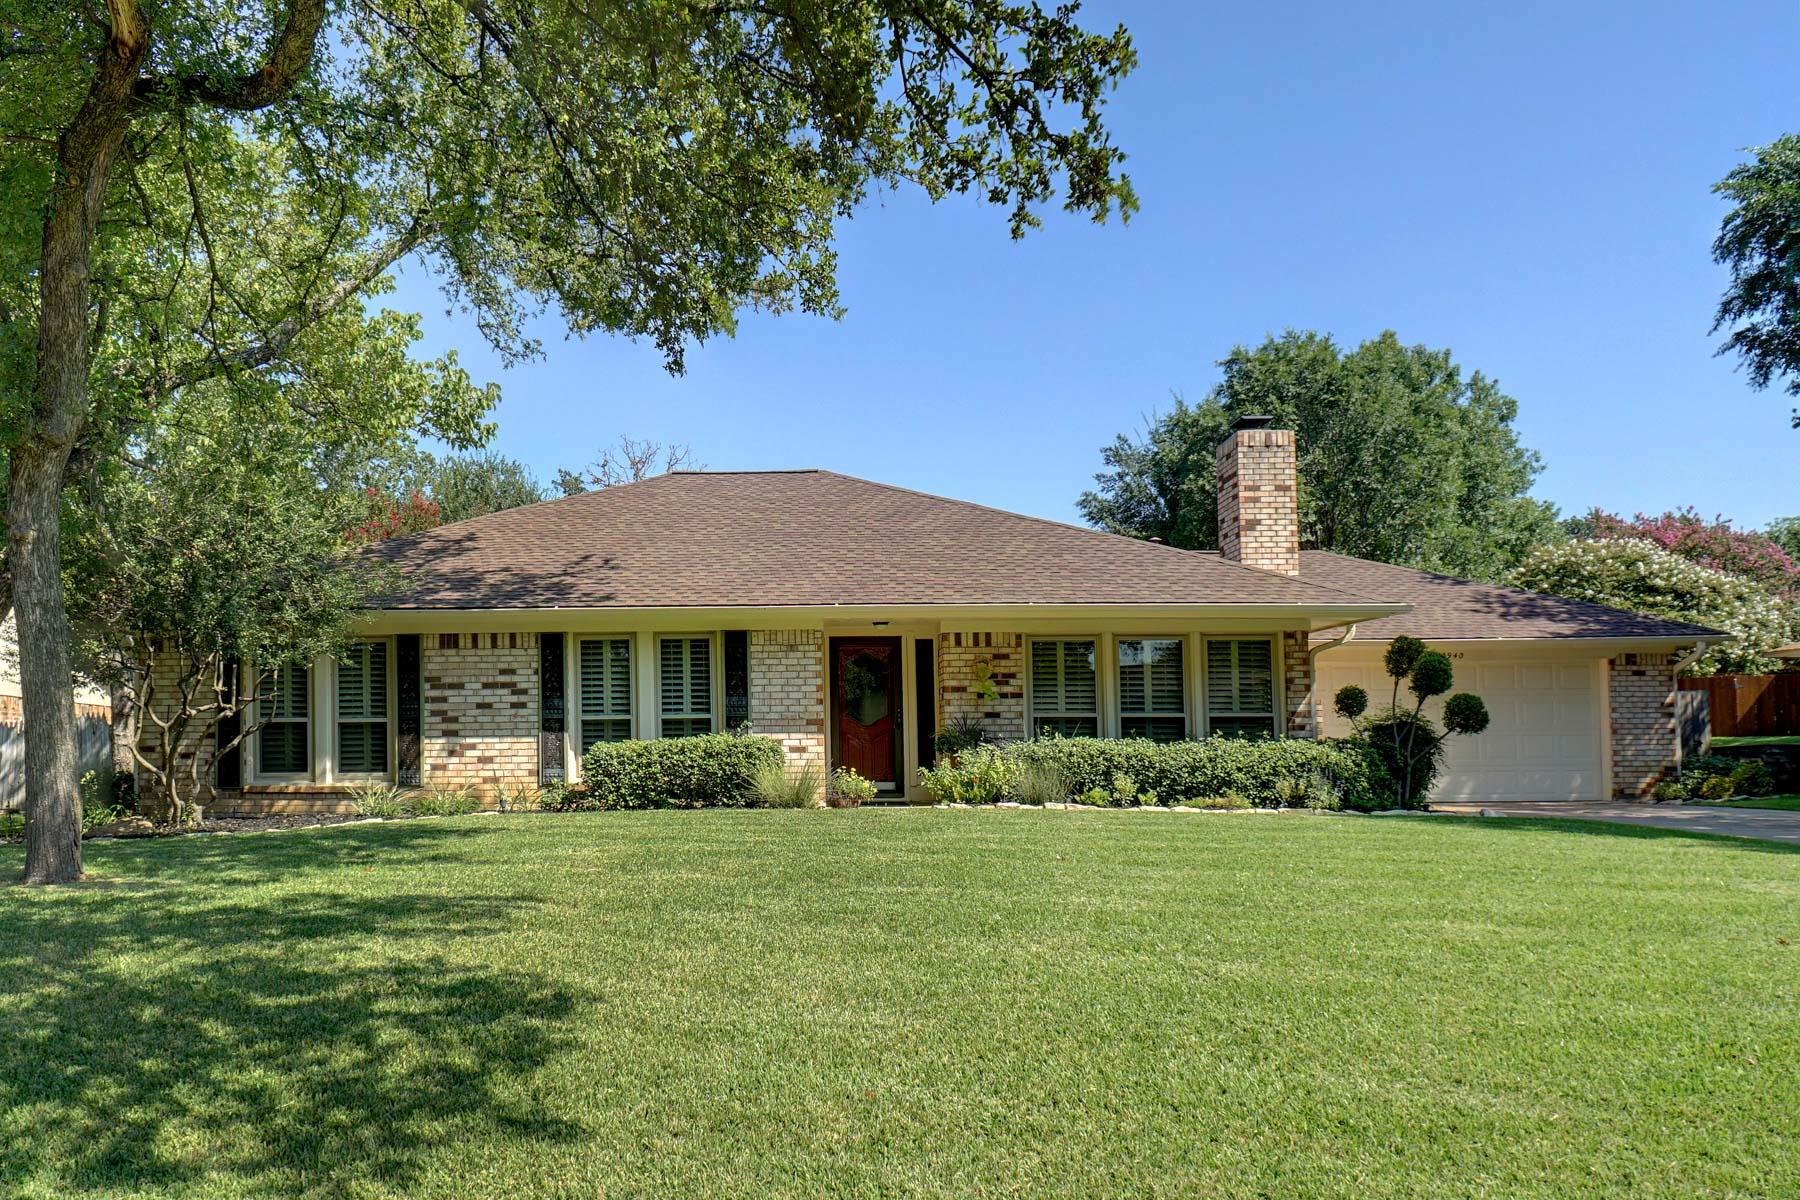 Single Family Home for Sale at Updated Home In Established Neighborhood 2940 Southridge Drive Grapevine, Texas, 76051 United States